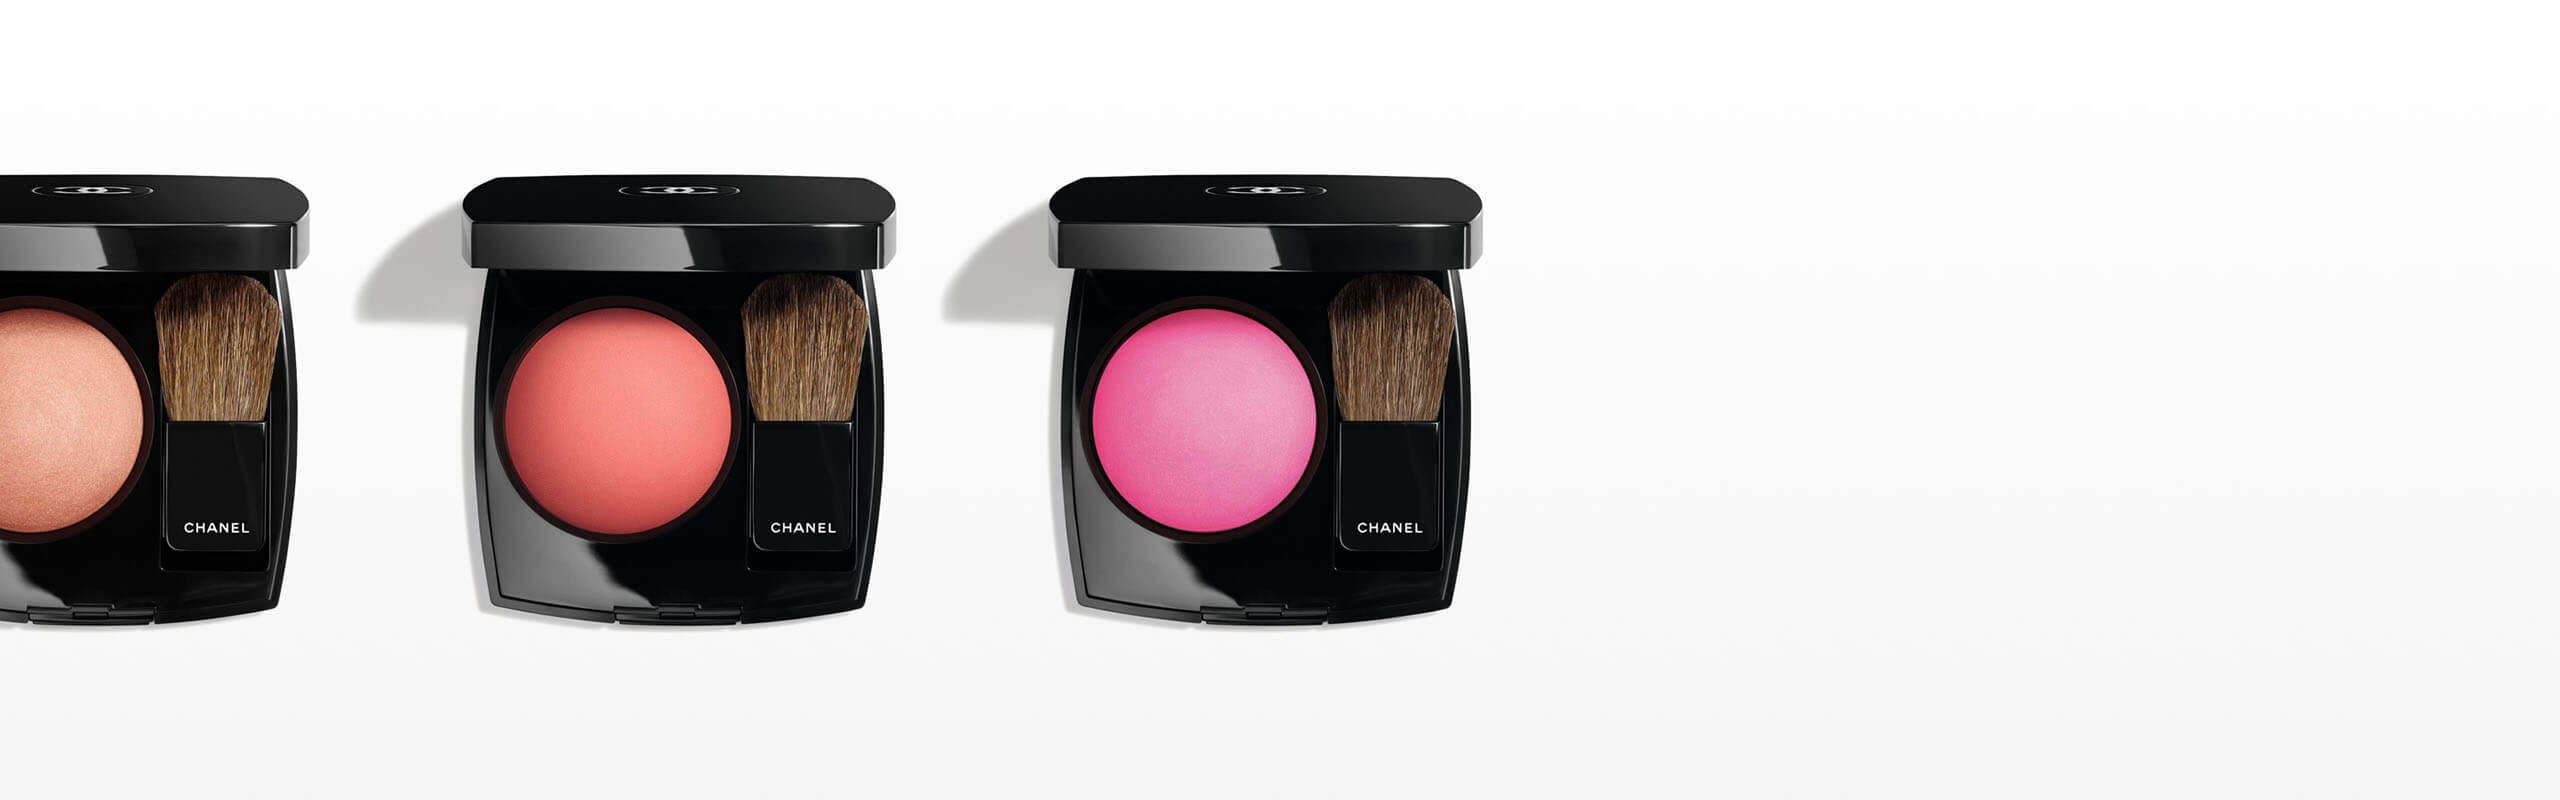 Blusher - Blush Palettes & Blush Sticks | CHANEL